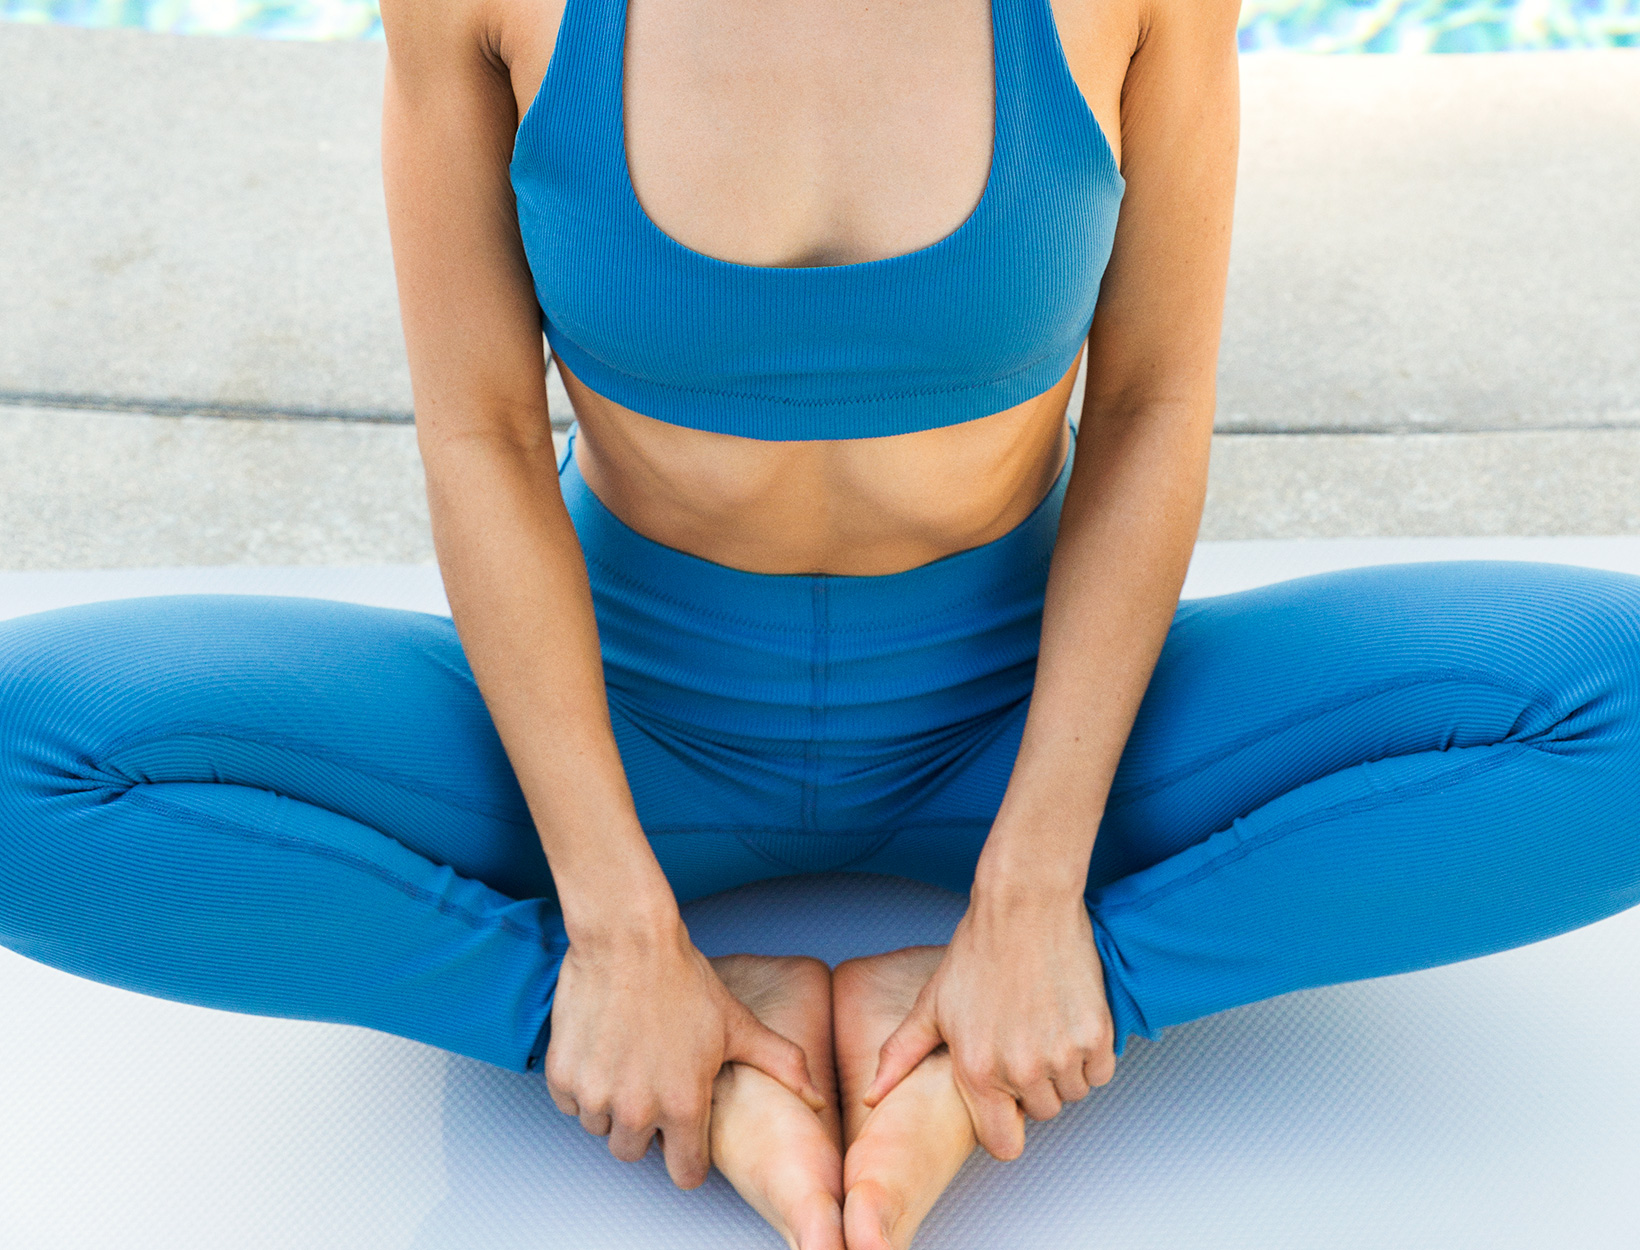 Our Master Teacher on the Yoga Benefit We'd Never Heard Of